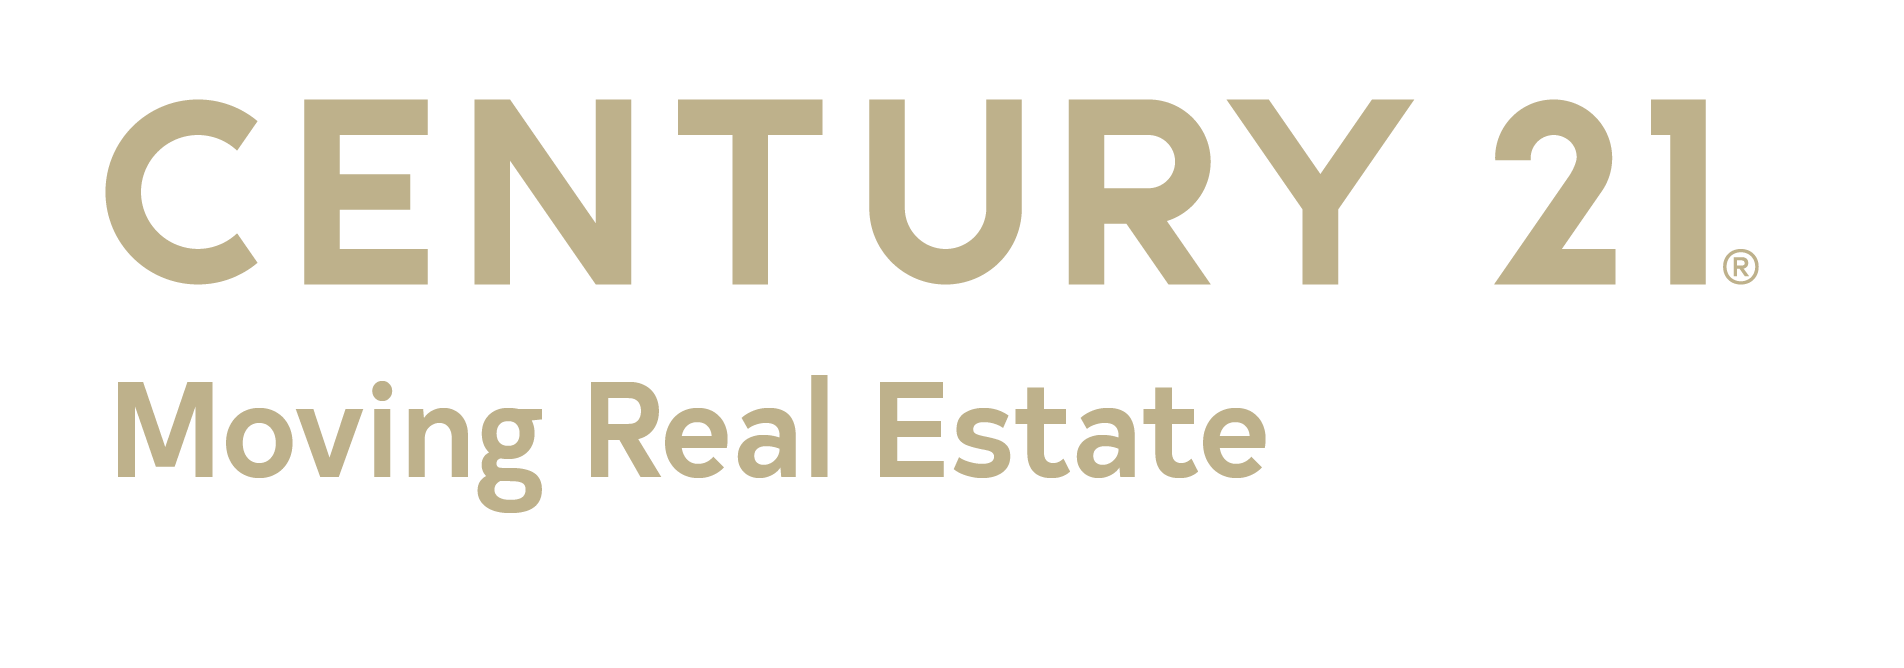 Century 21 Moving Real Estate